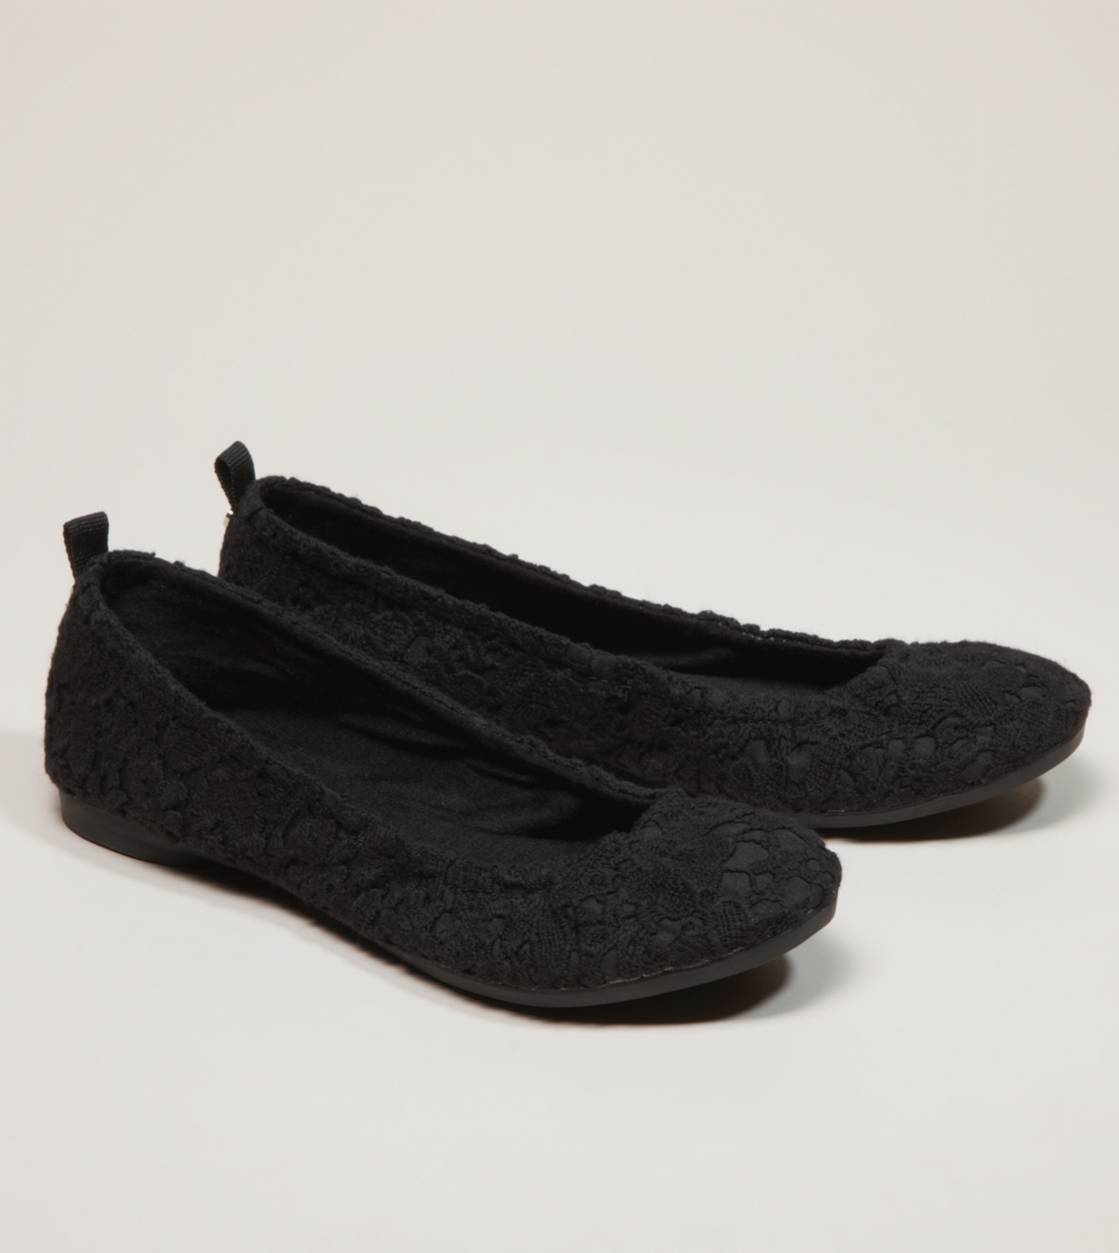 AEO Crocheted Lace Ballet Flat from ae.com